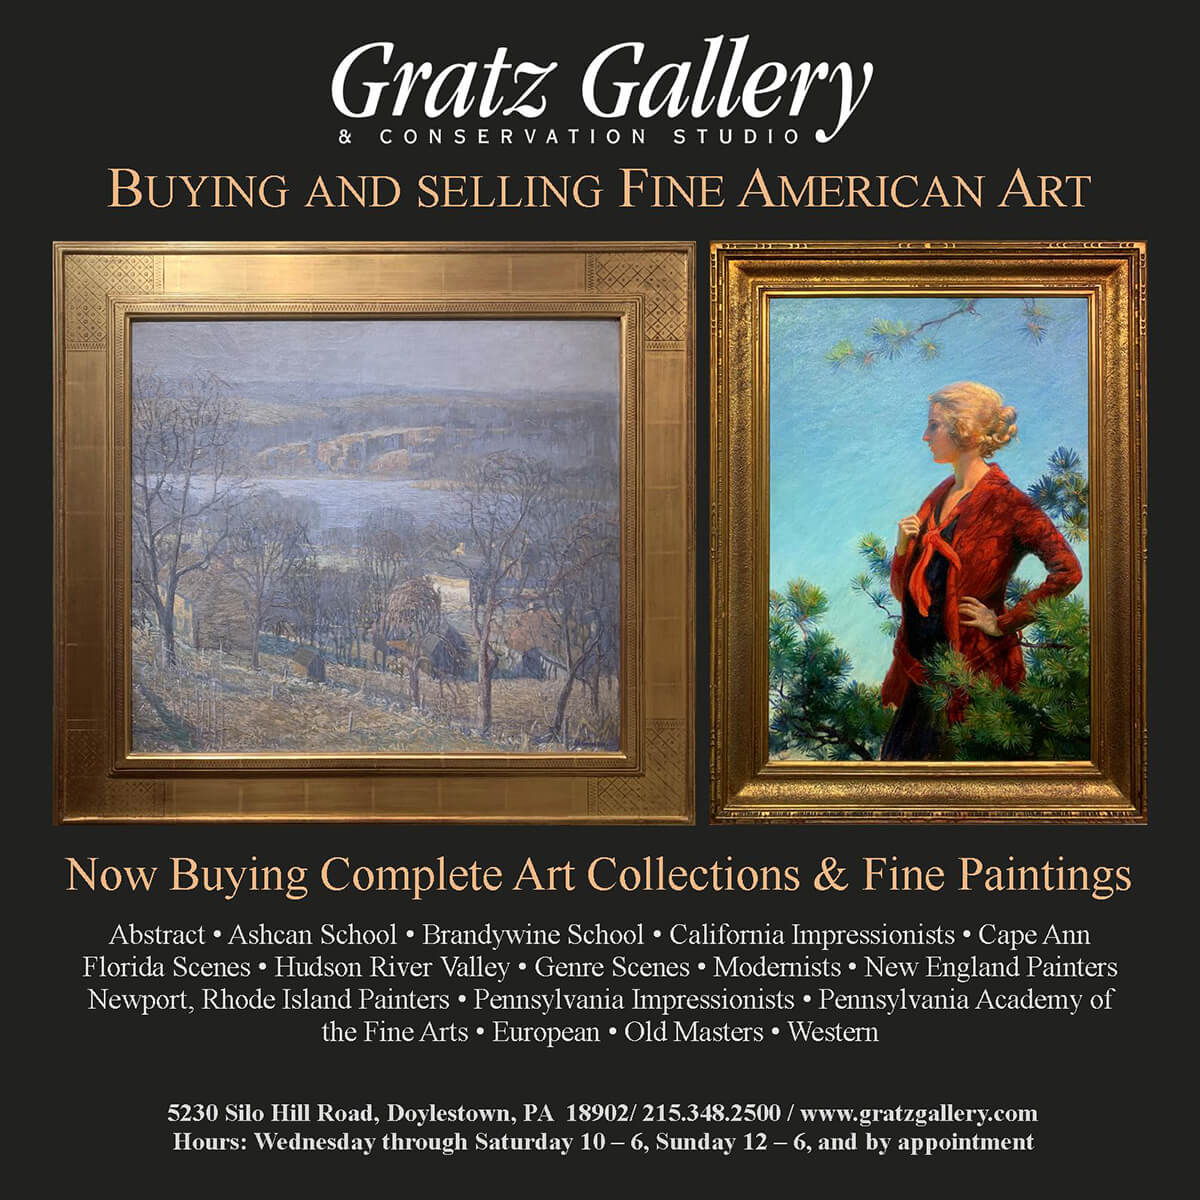 Buys and Sells Fine American Art in Bucks County